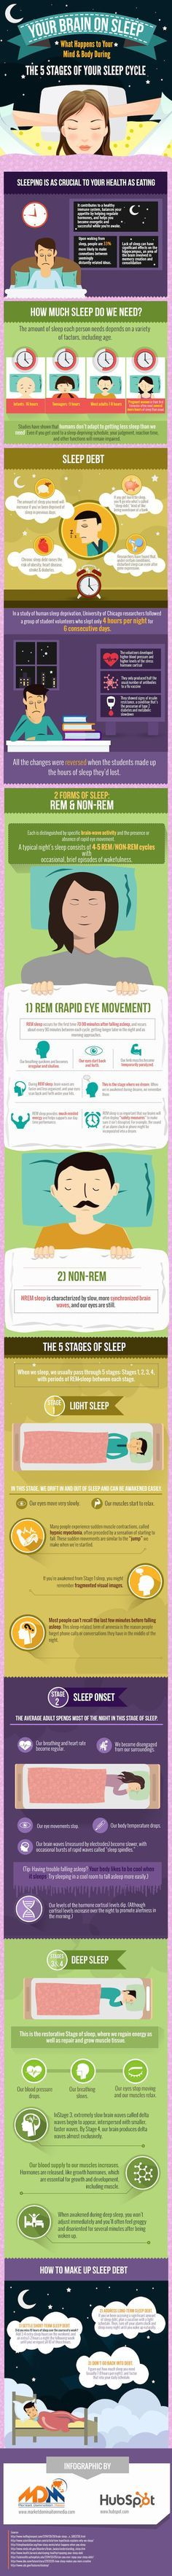 This is your brain on sleep. Here's how much sleep you really need to be productive and alert get better sleep, sleeping tips